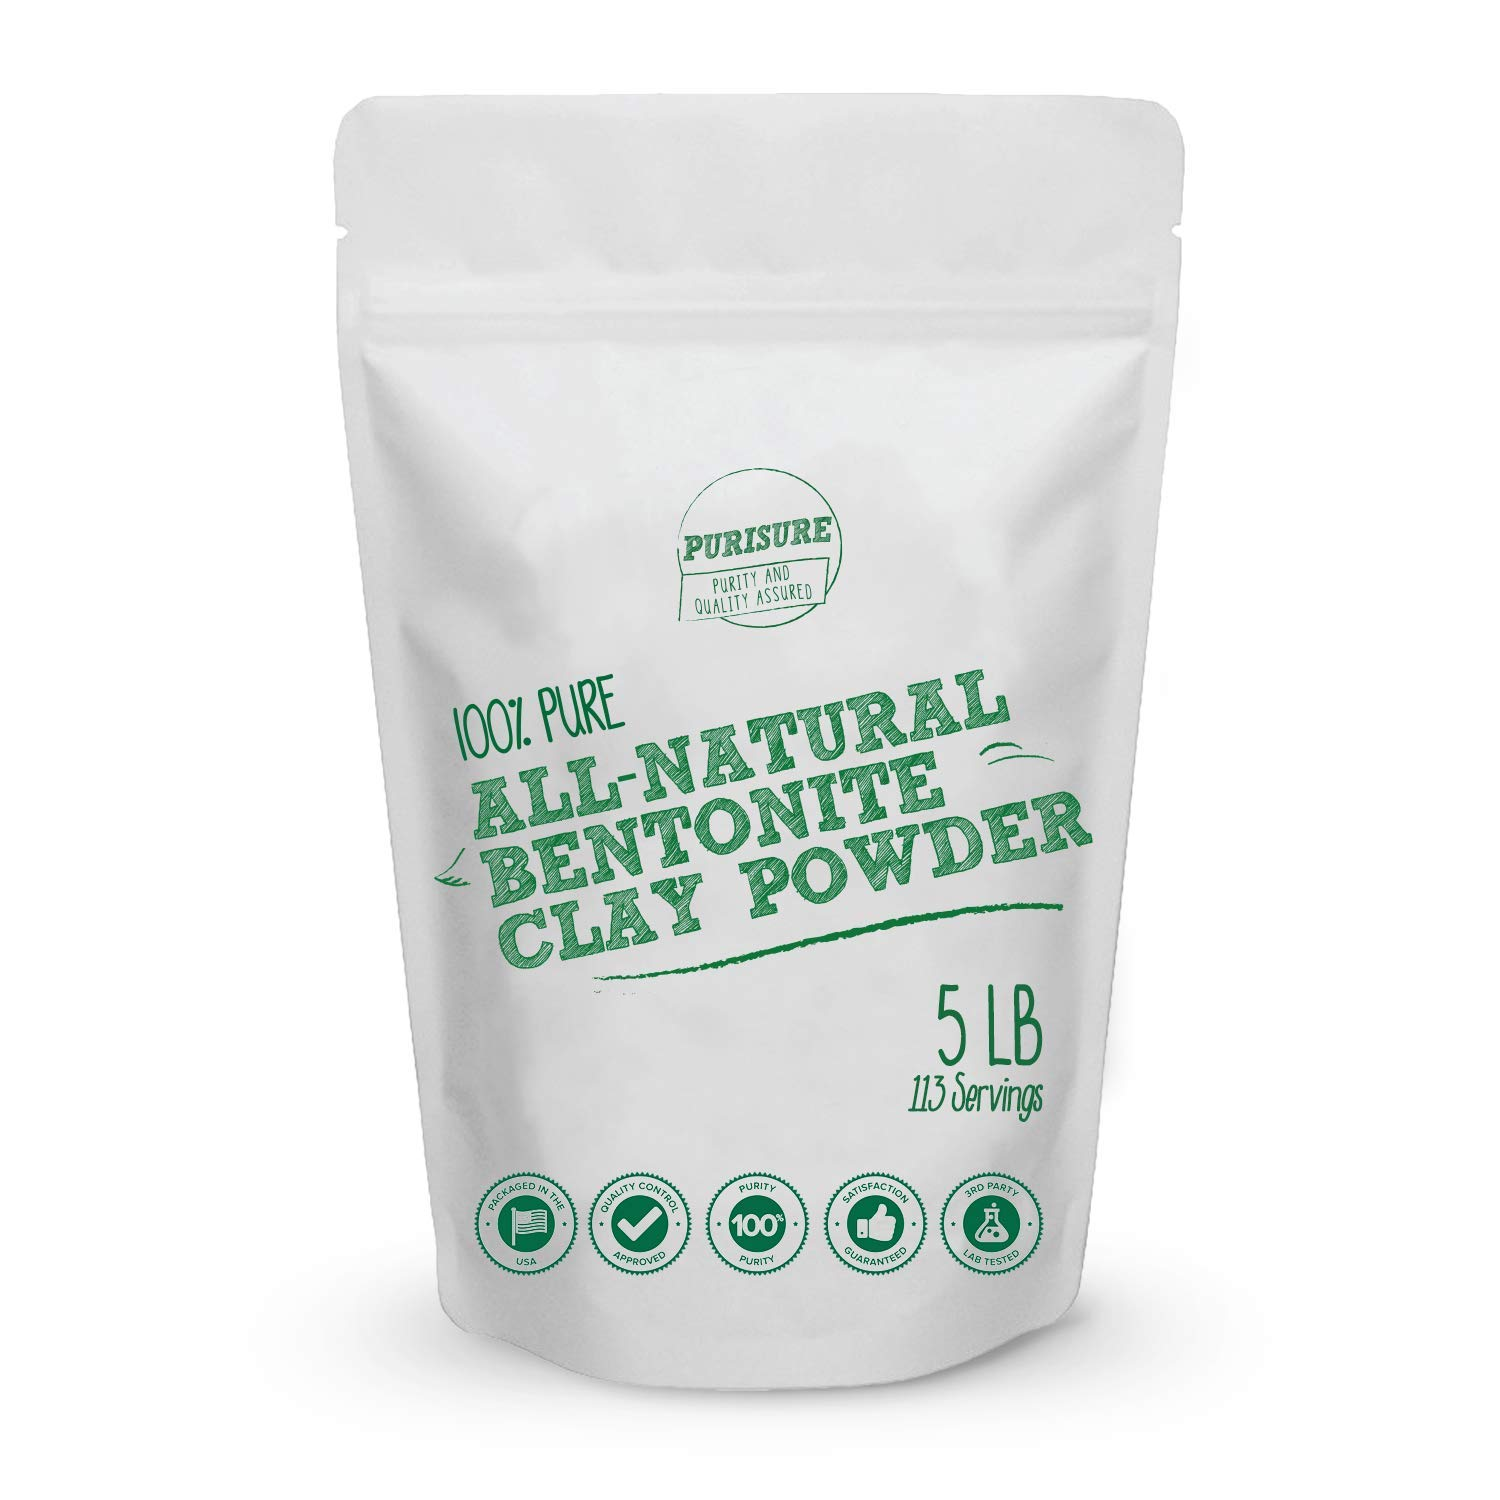 Purisure Bentonite Clay 5lbs, Acne Treatment, Mud Mask, Soothes And Detoxifies, Indian Healing Clay, Rich In Minerals, Lowest Price